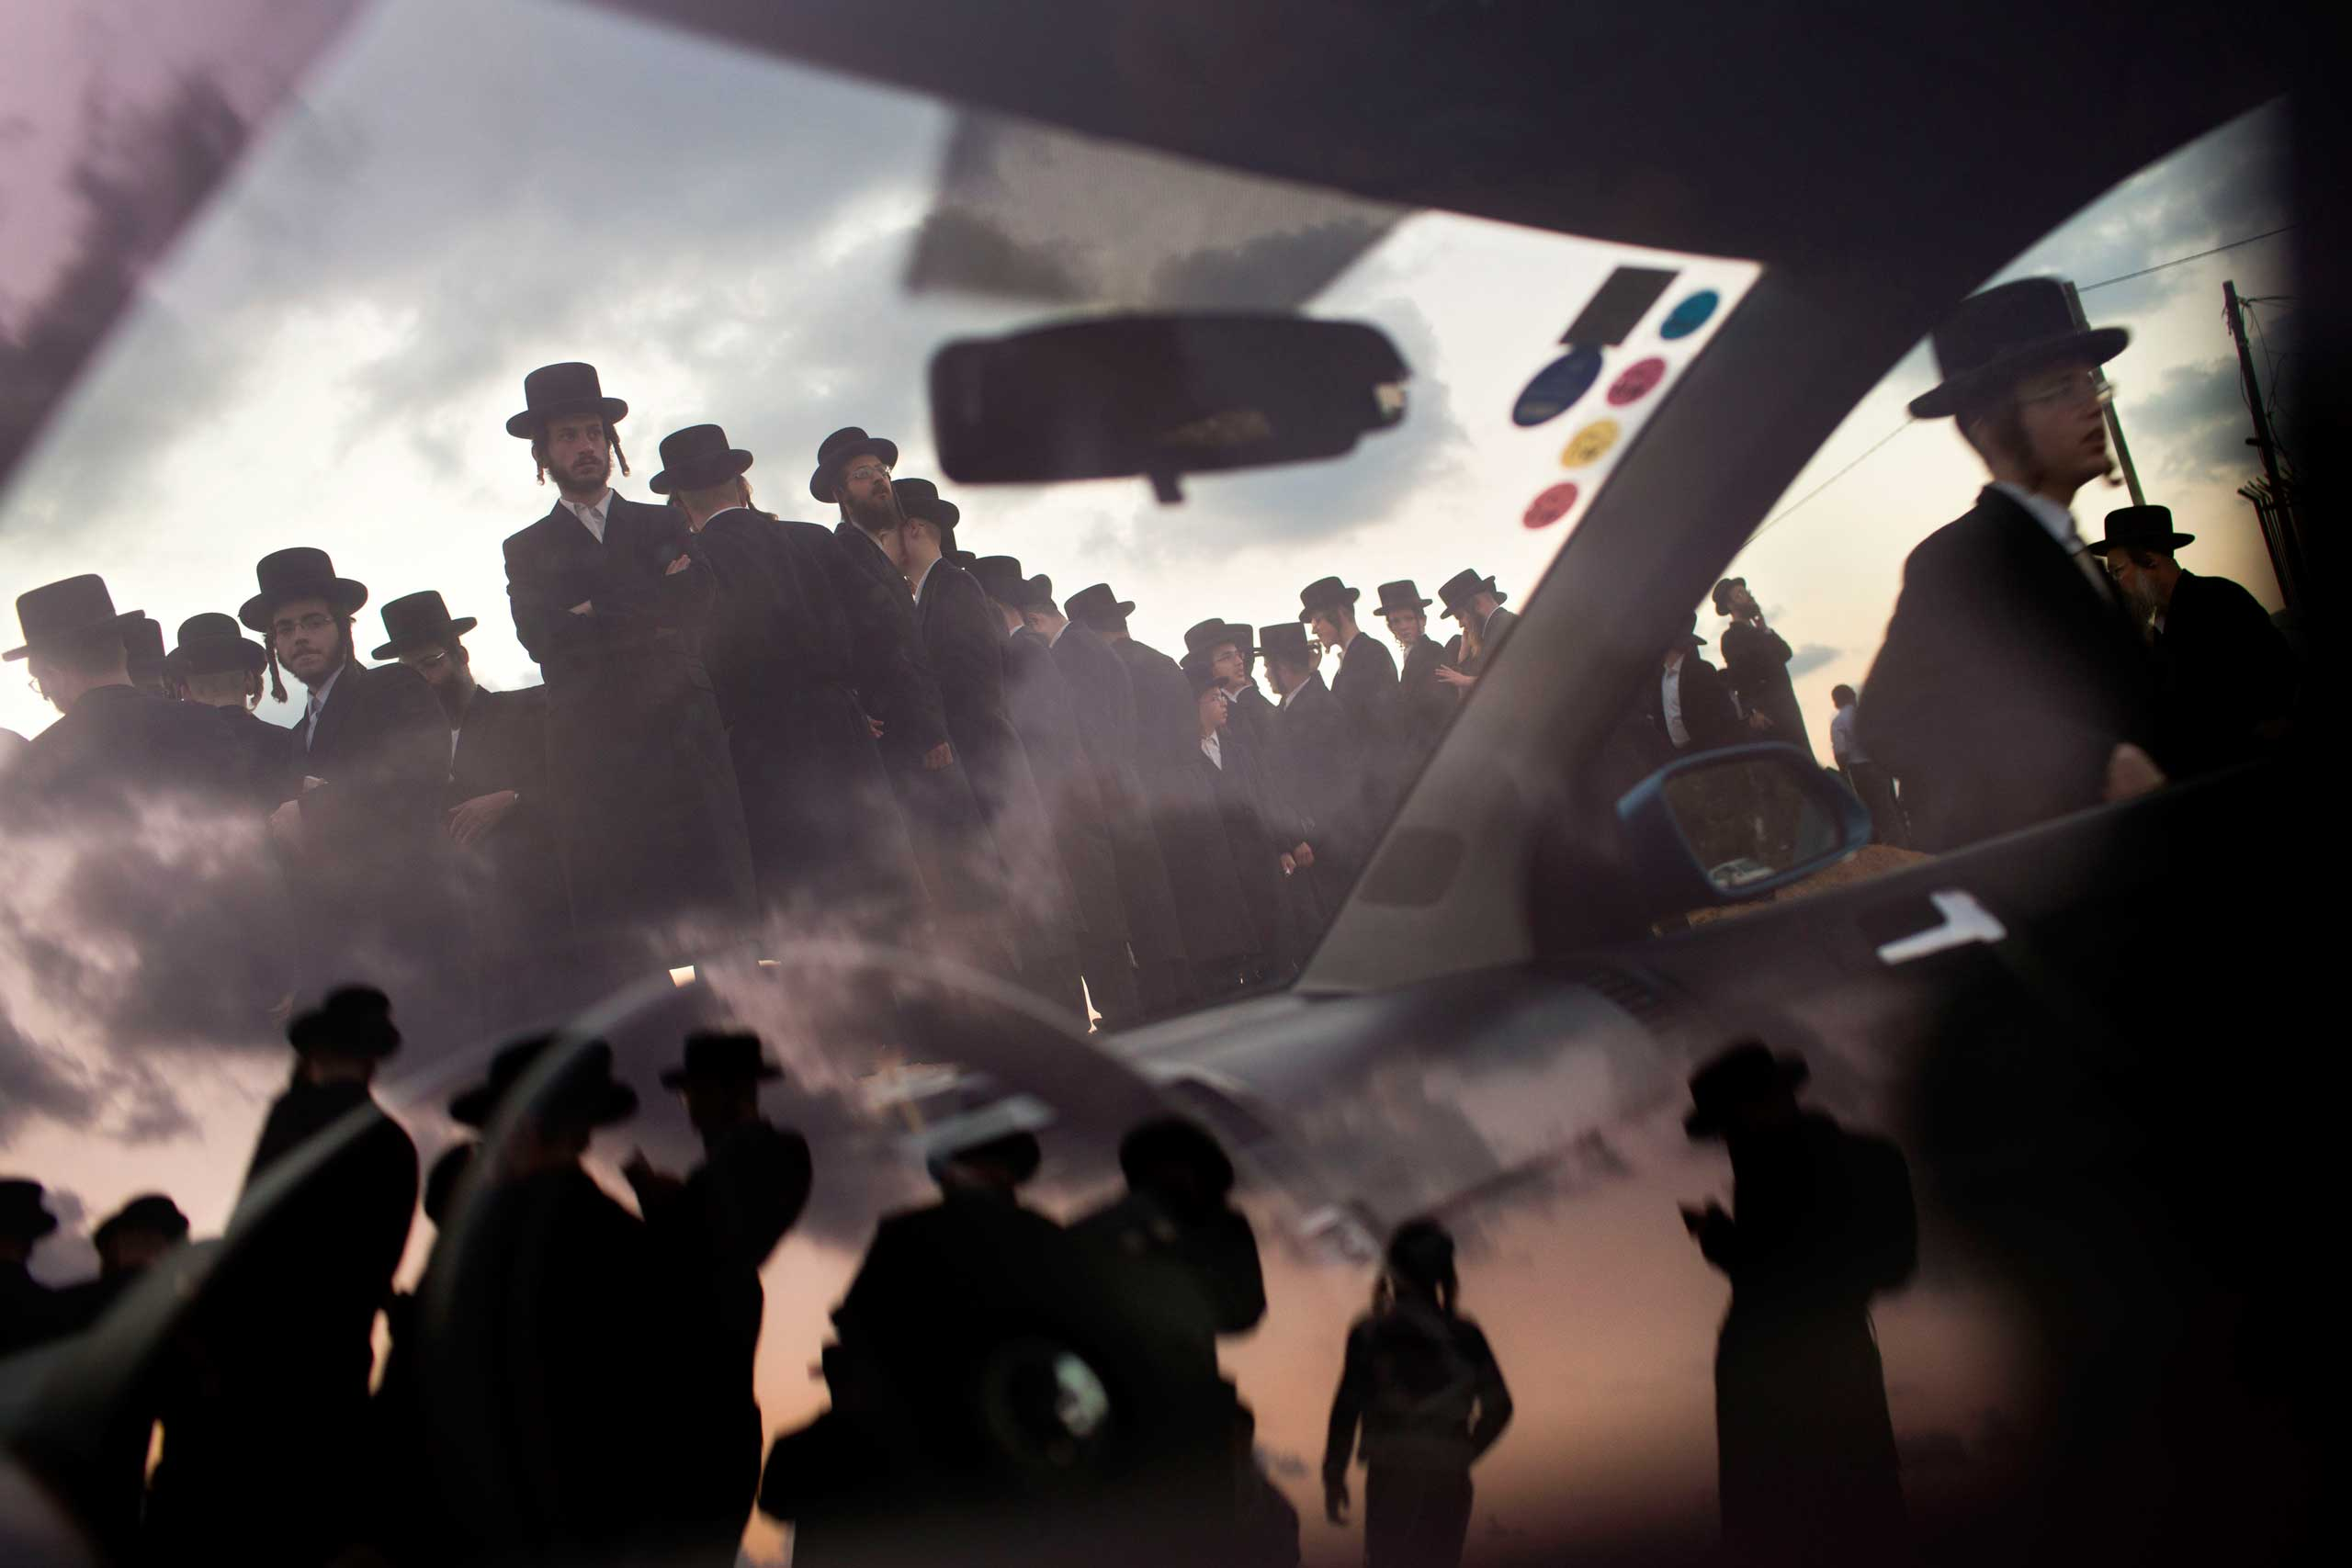 Oct. 2, 2014. Ultra-Orthodox Jews of the Hassidic sect Vizhnitz reflect on a car window as they gather on a hill overlooking the Mediterranean sea as they participate in a Tashlich ceremony in Herzeliya, Israel.